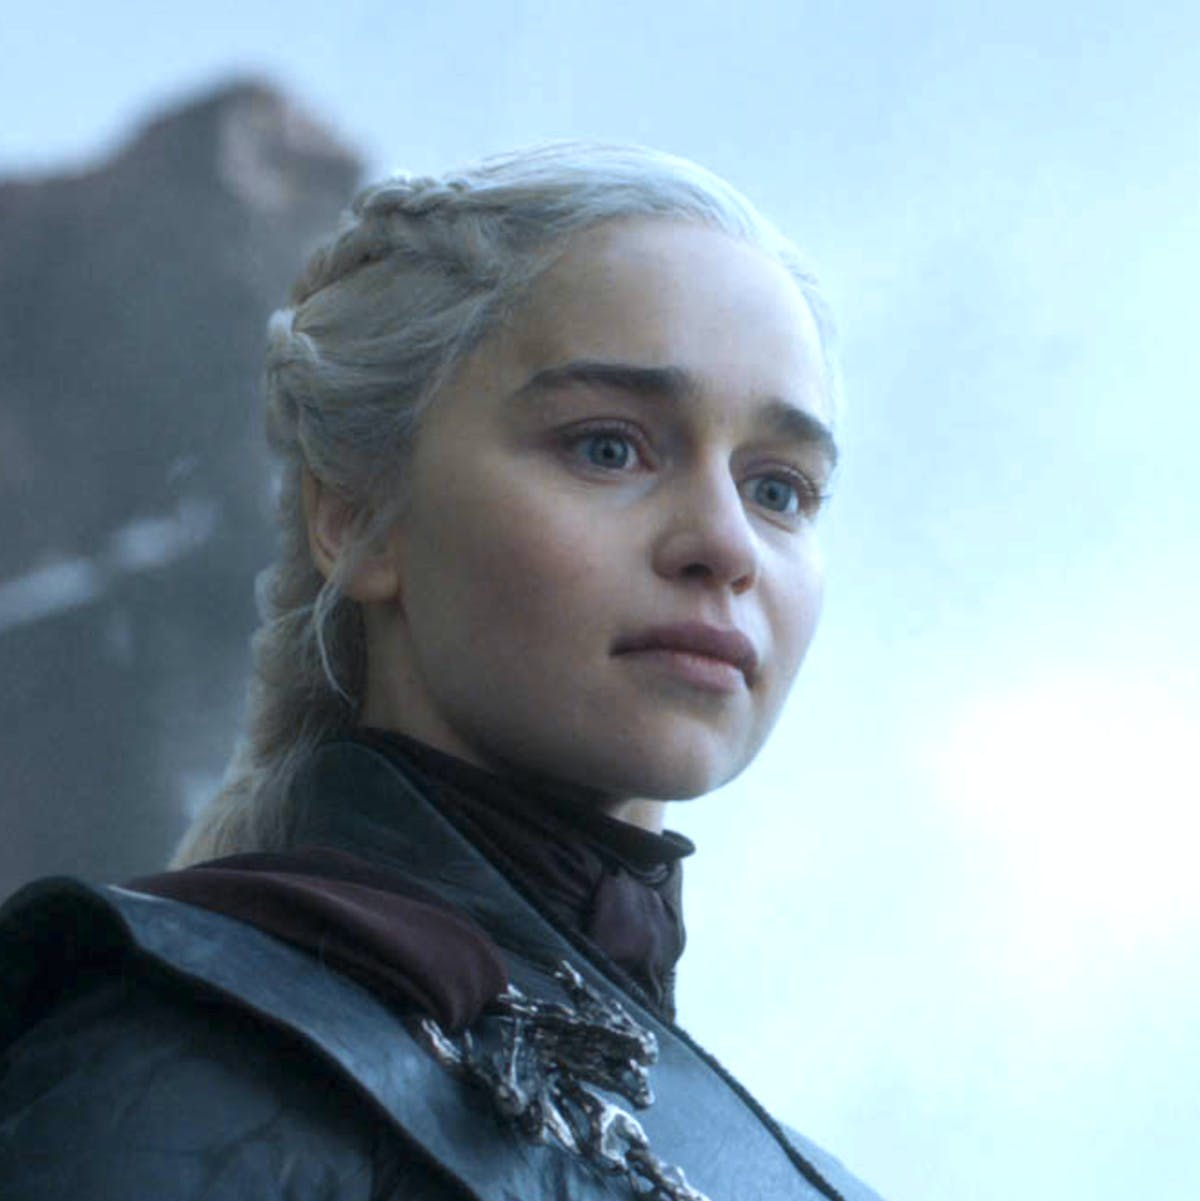 Game of Thrones' Finale Spoilers: How Daenerys May Come Back